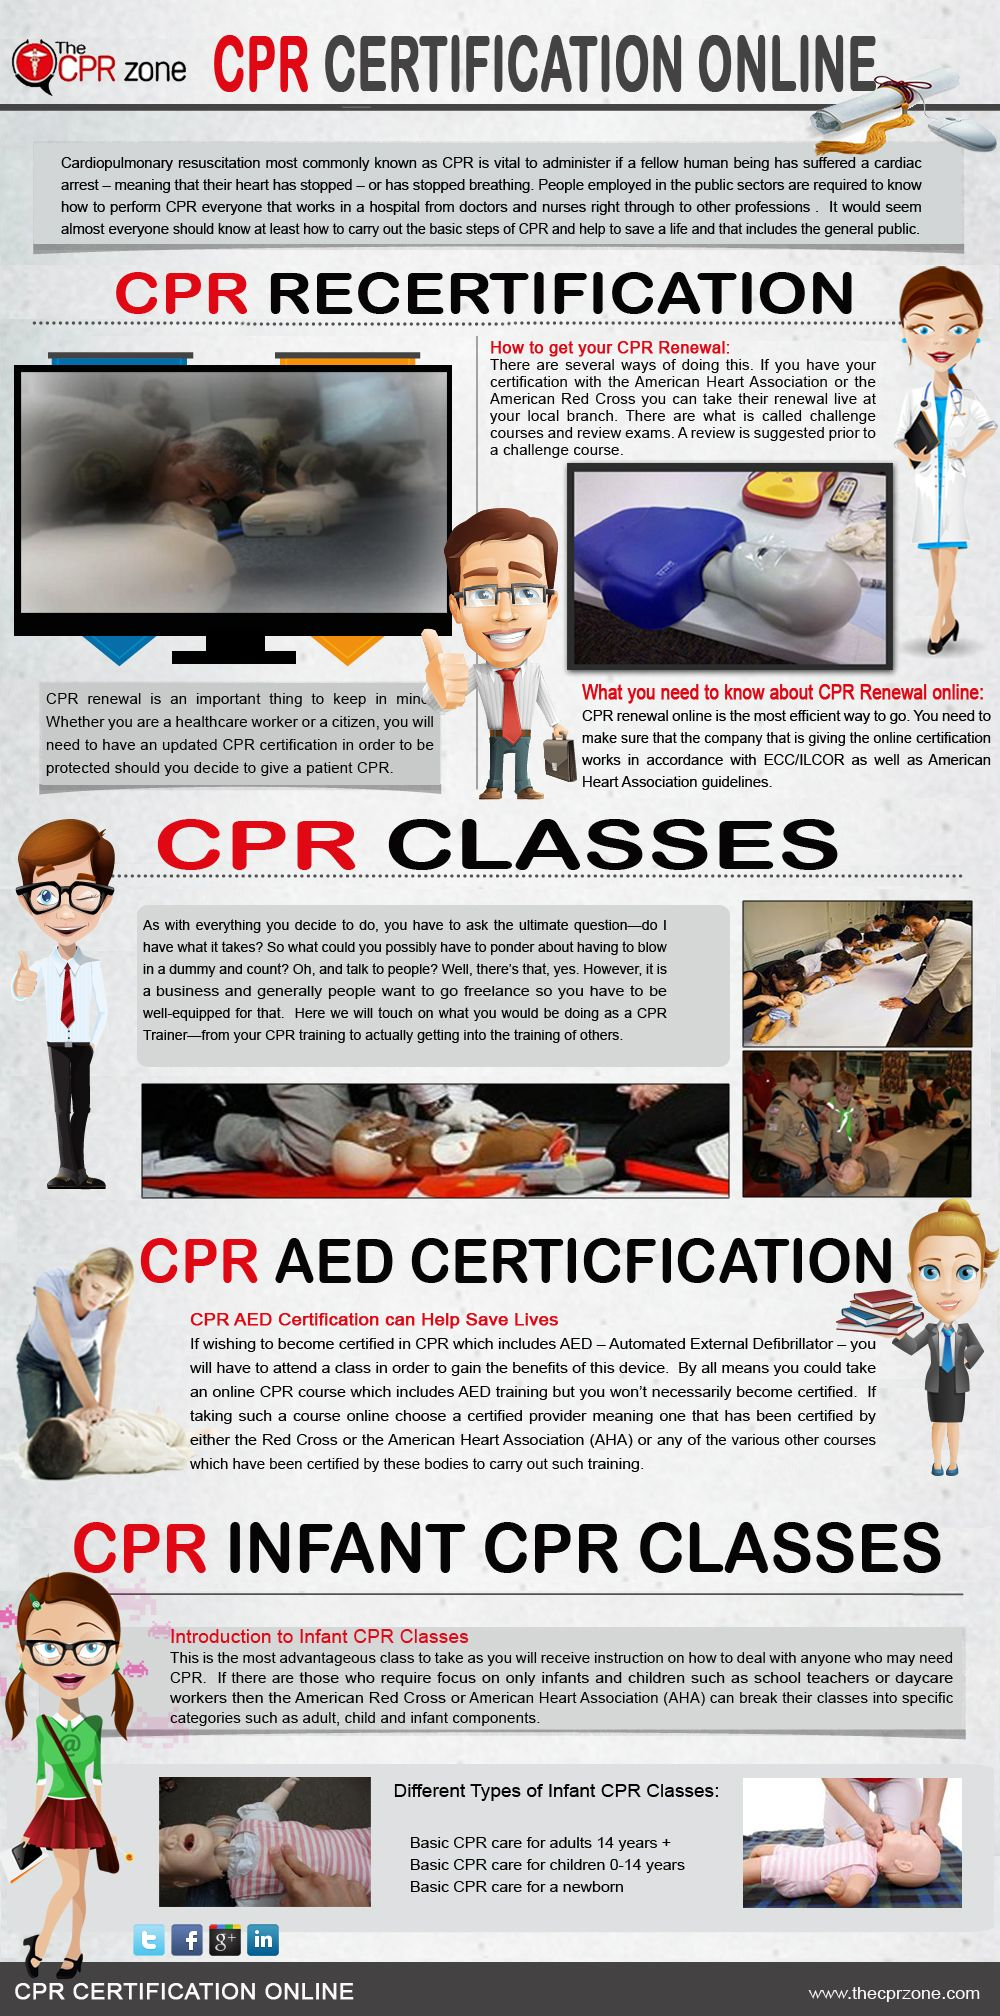 Cpr certification online is much cheaper compared to regular cpr cpr certification online is much cheaper compared to regular cpr training in person browse this xflitez Images